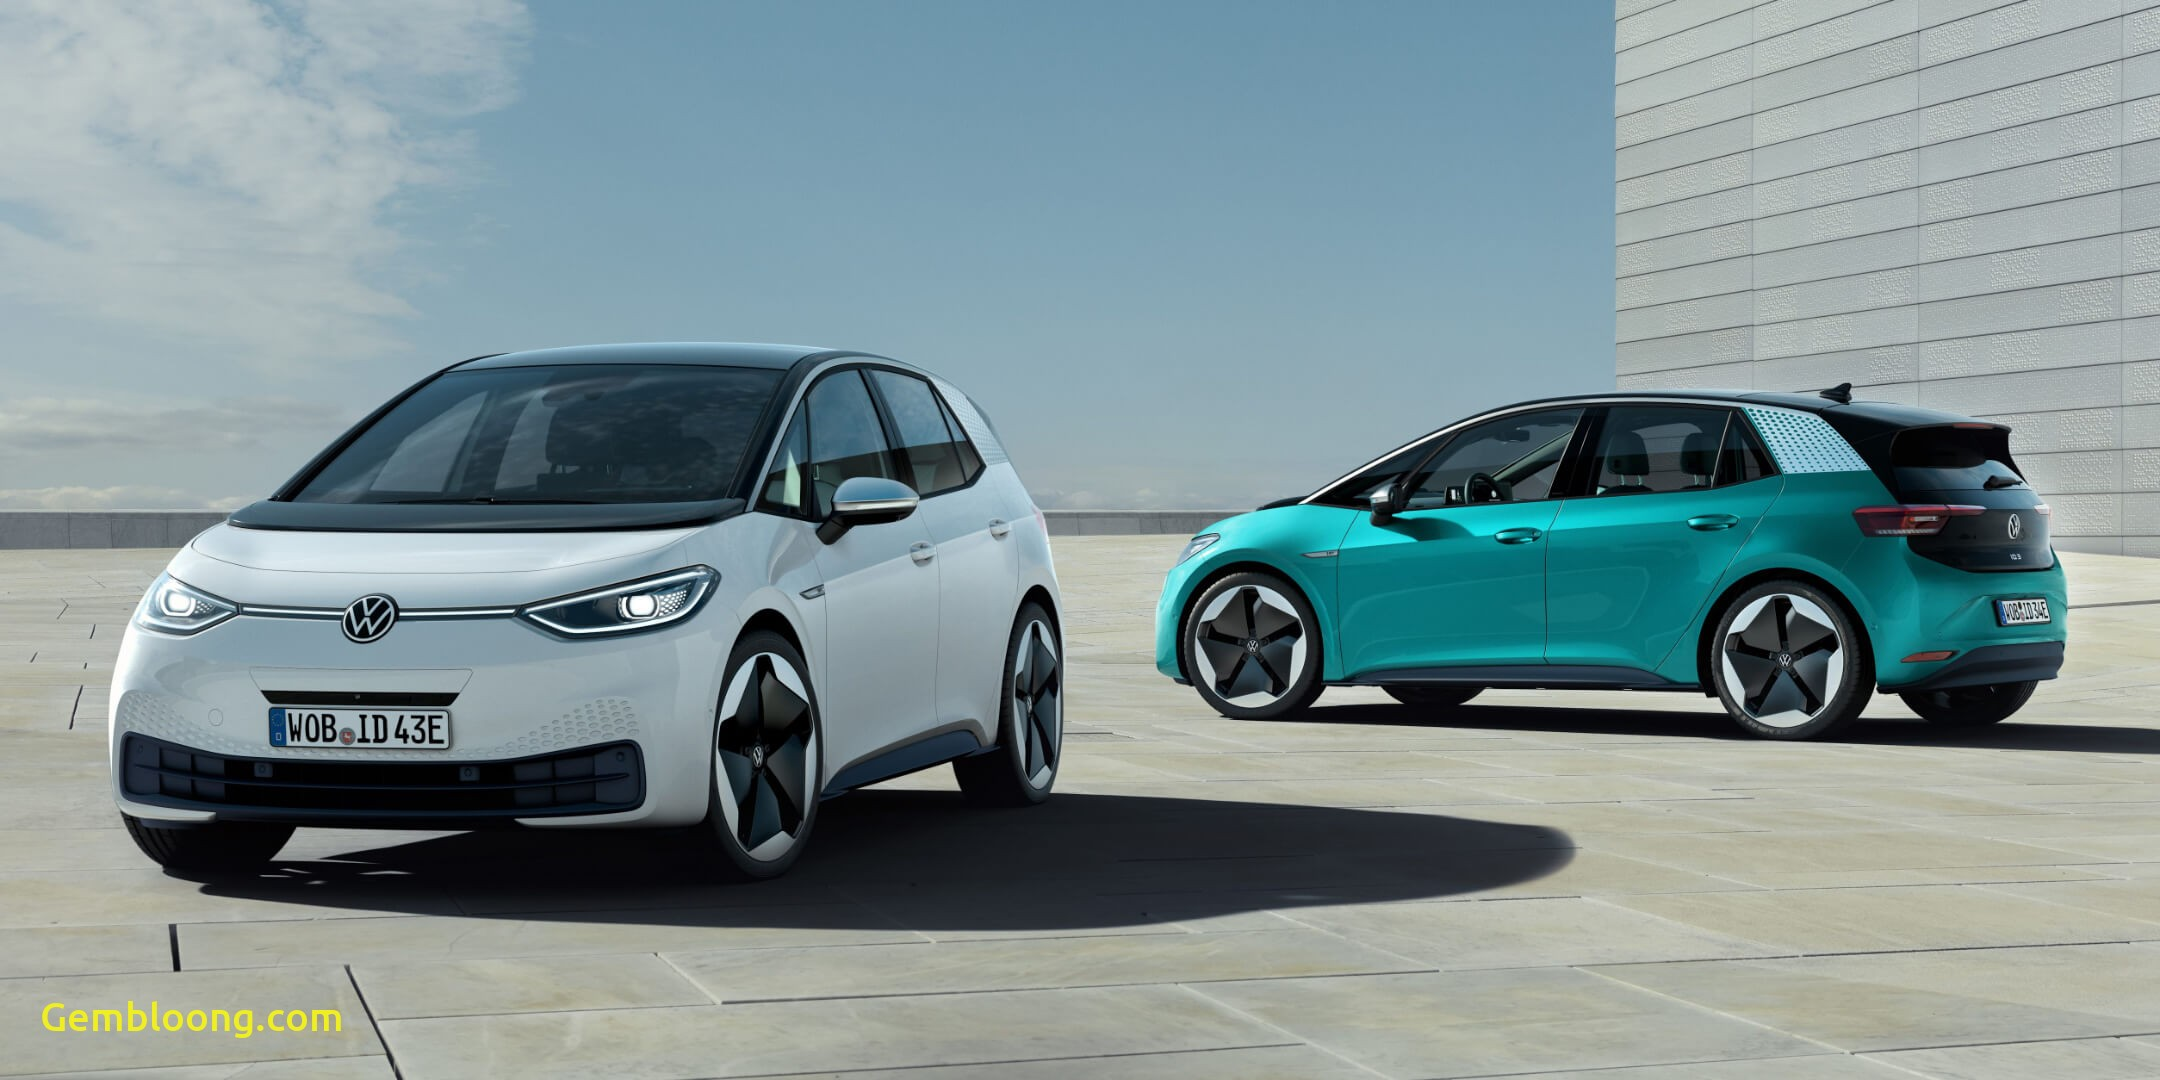 Cars Cars Sale Car Shows Elegant Volkswagen Plans to Sell One Million Electric Cars Per Year